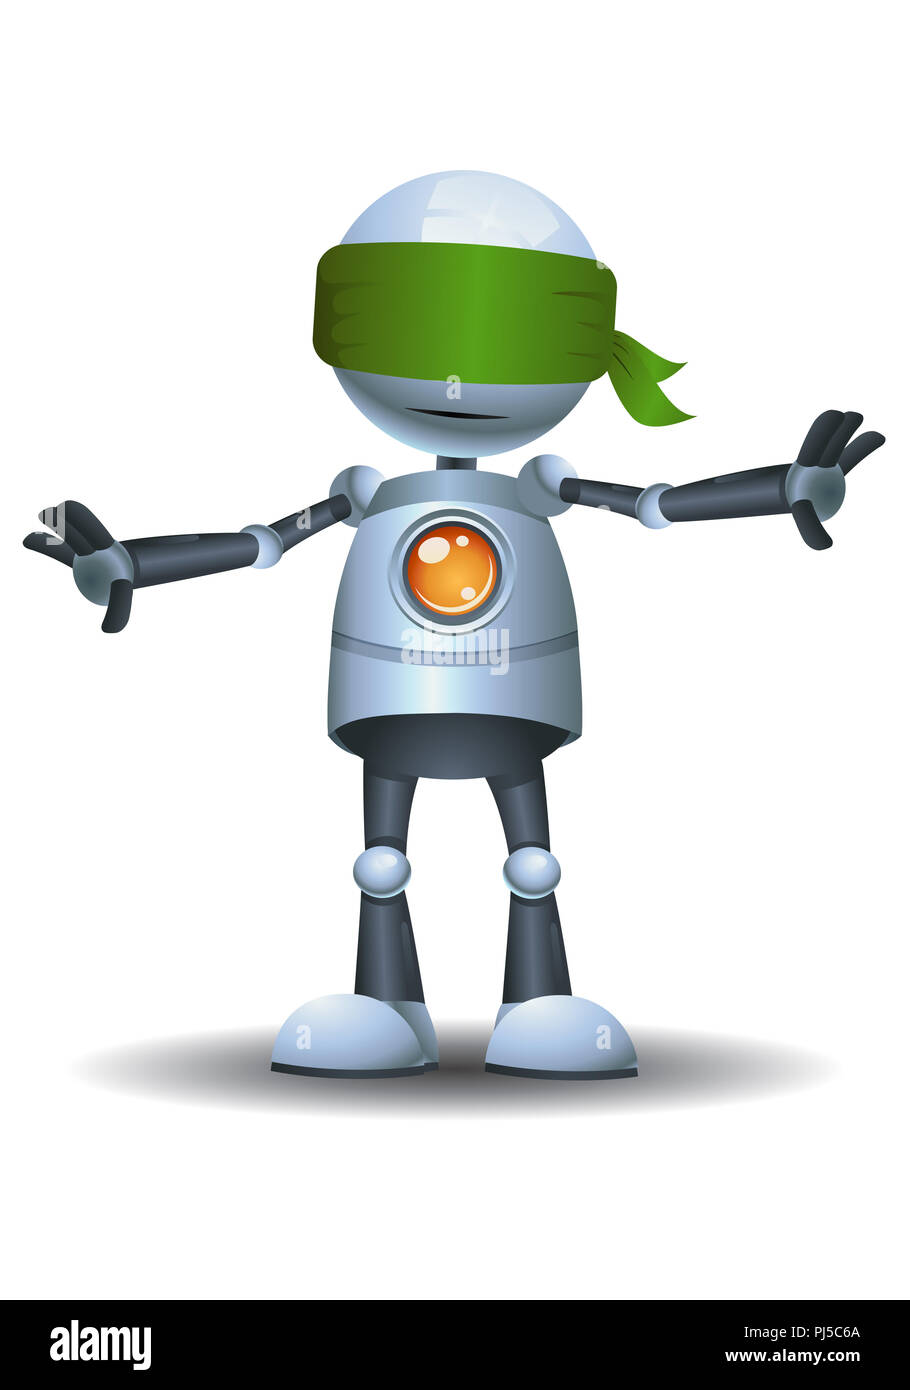 illustration of a little robot playing hide and seek on isolated white background - Stock Image